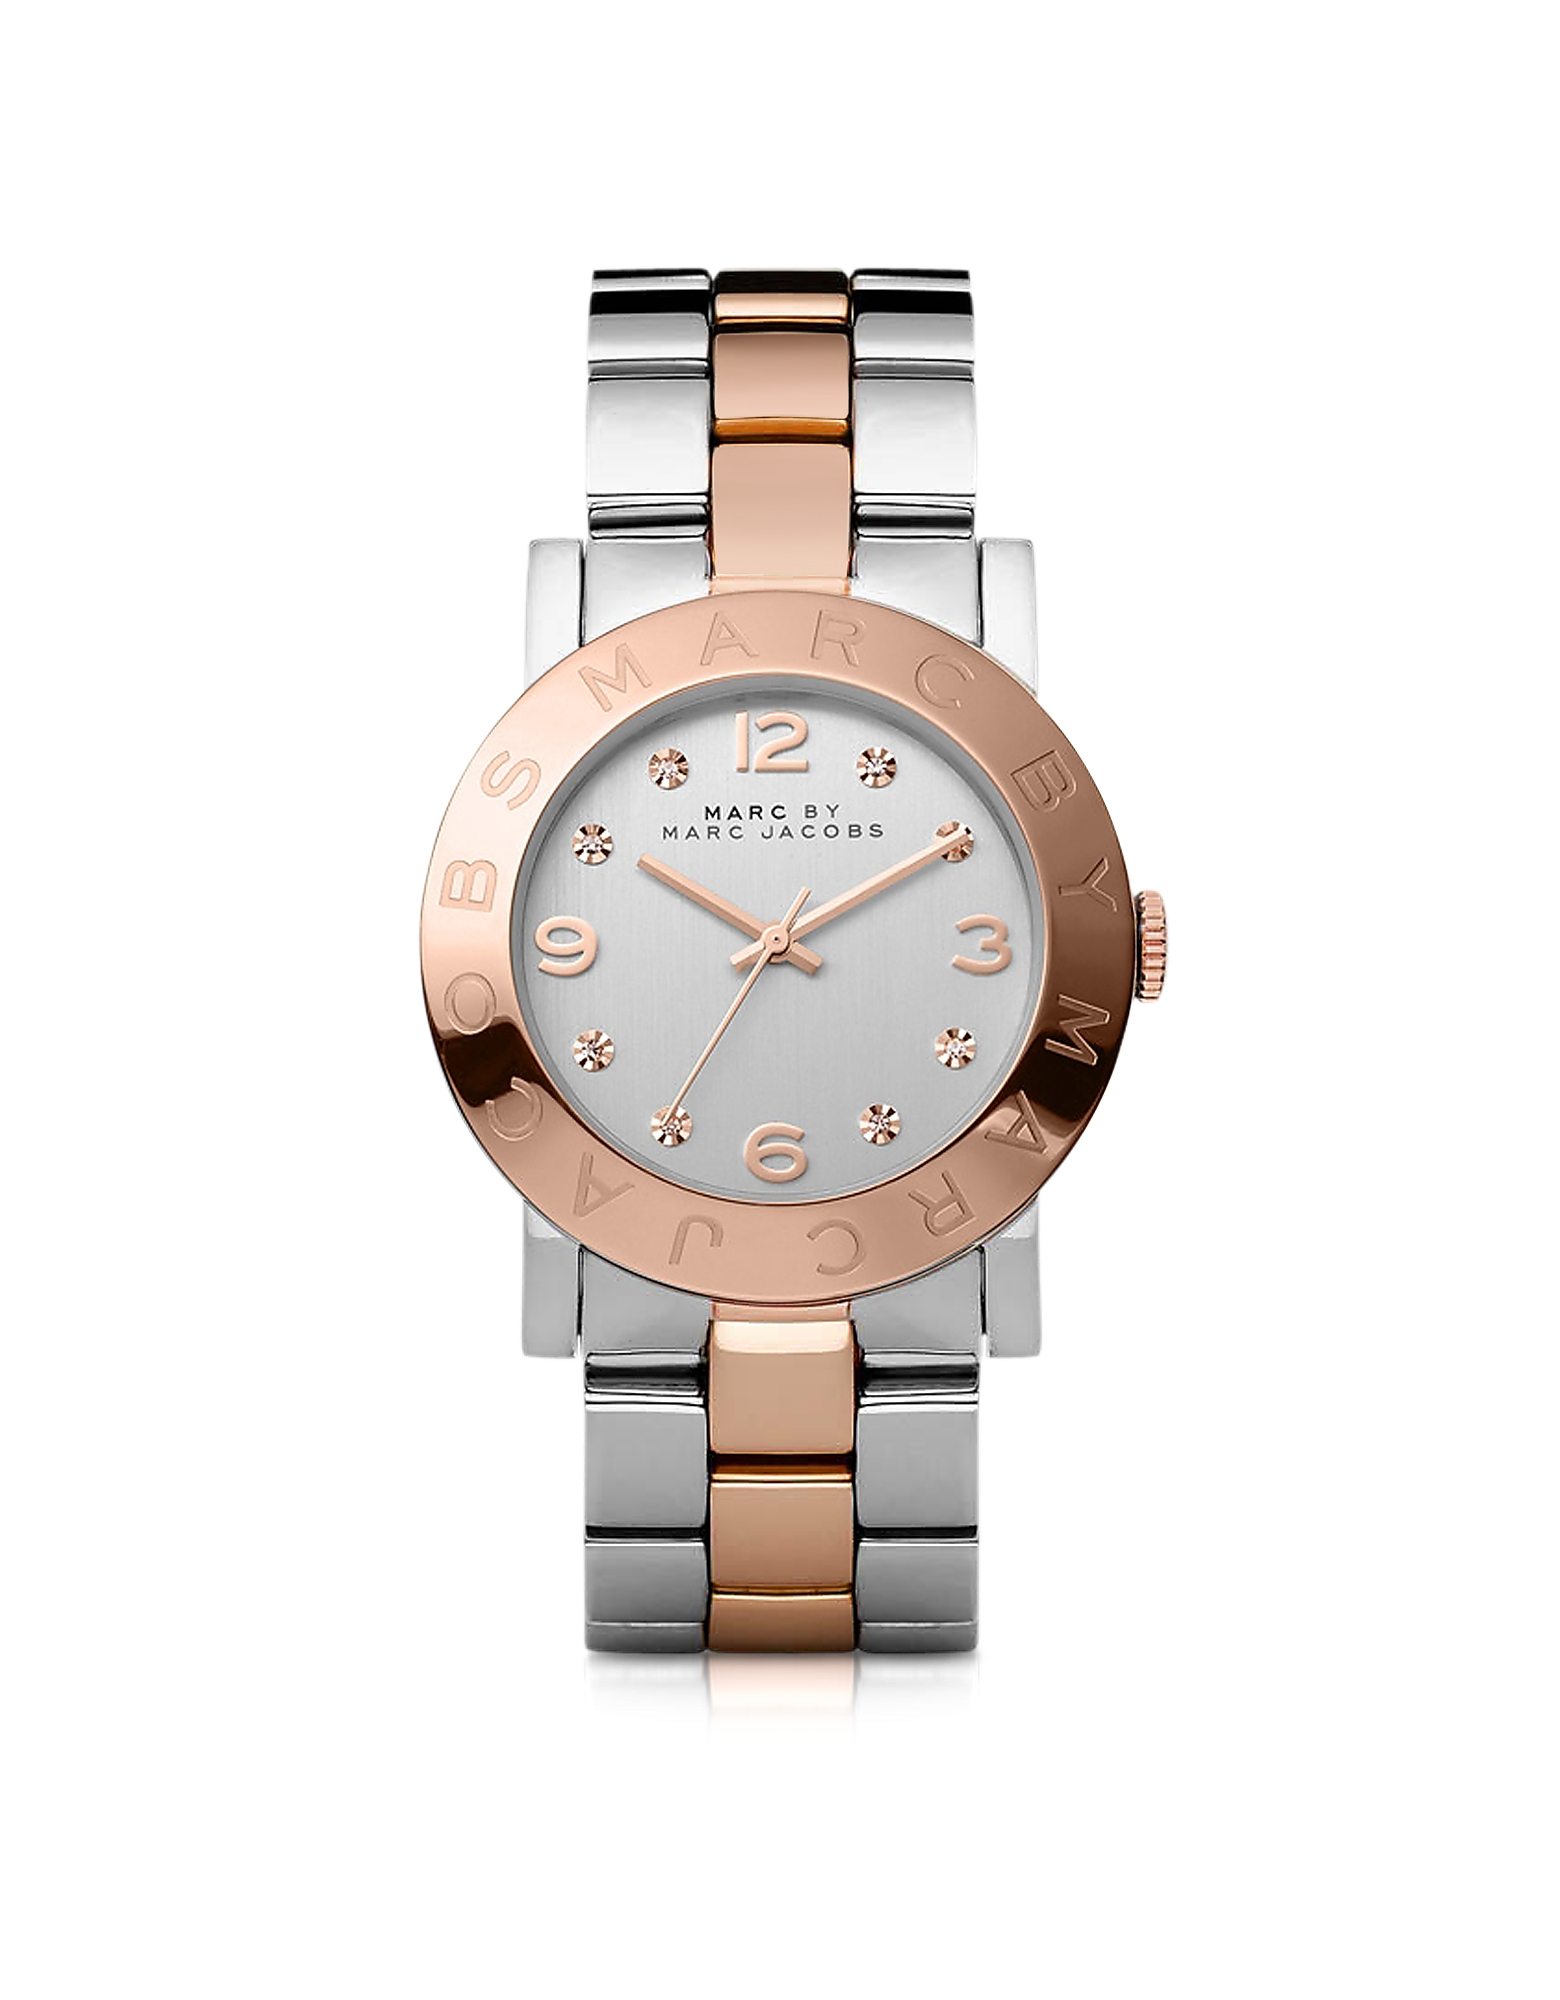 Marc by Marc Jacobs Women's Watches, Amy 36 MM Two Tone Stainless Steel Women's Watch